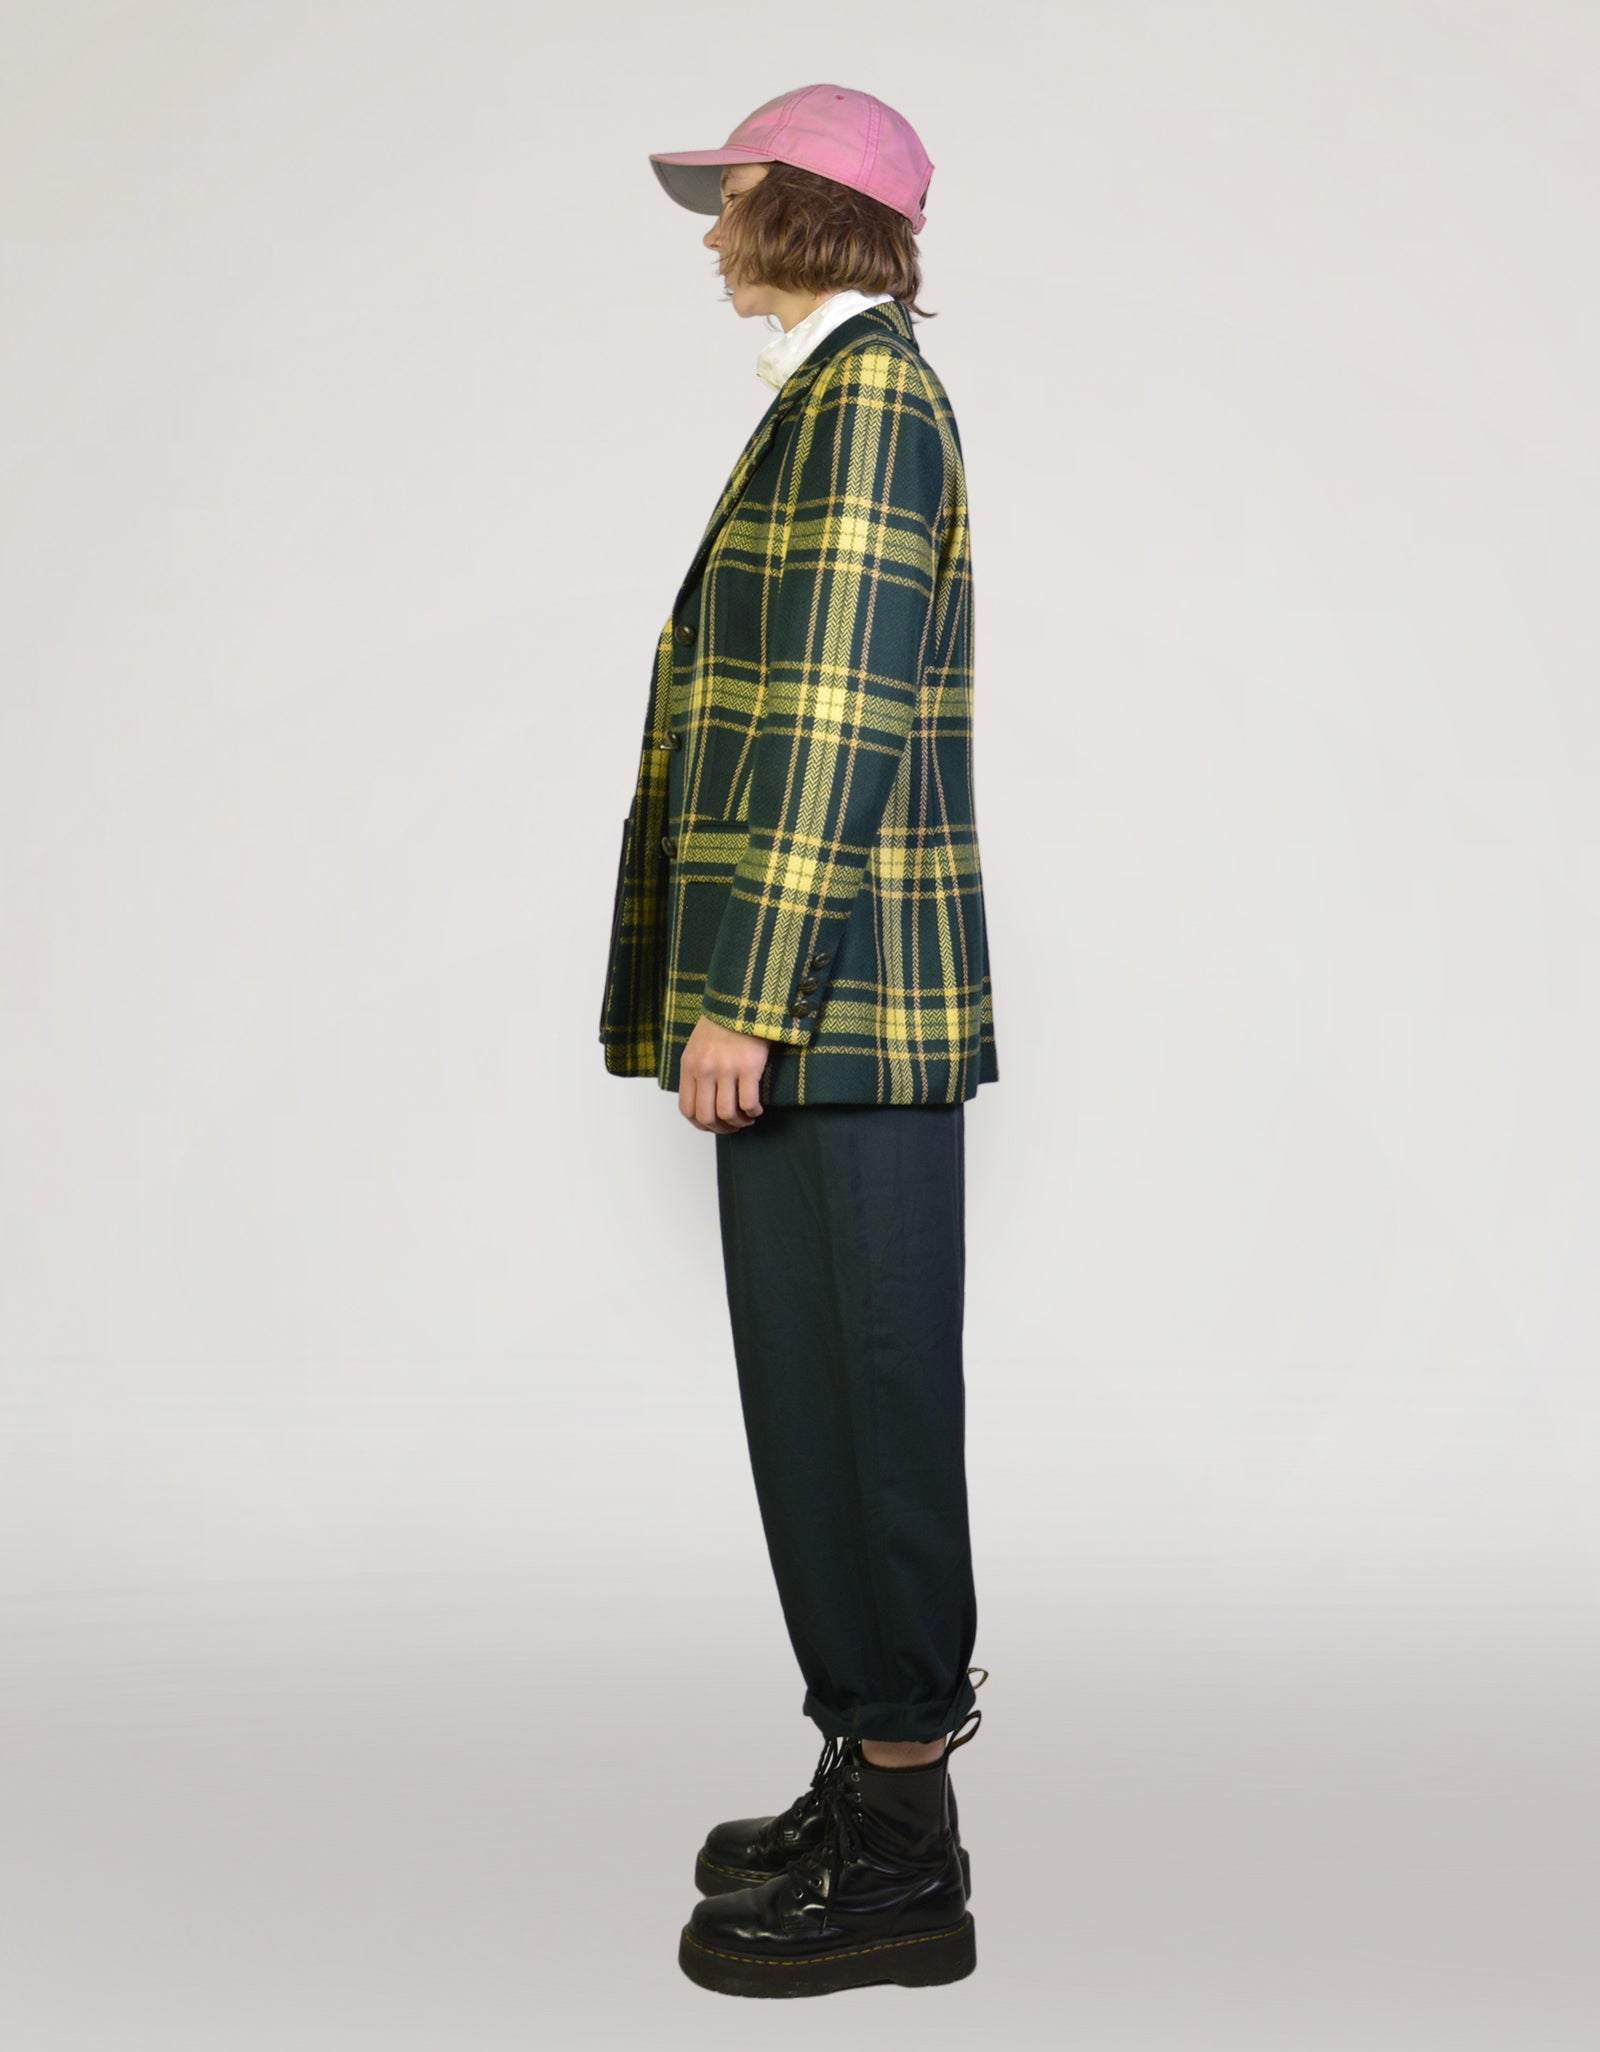 Tweed jacket - PICKNWEIGHT - VINTAGE KILO STORE